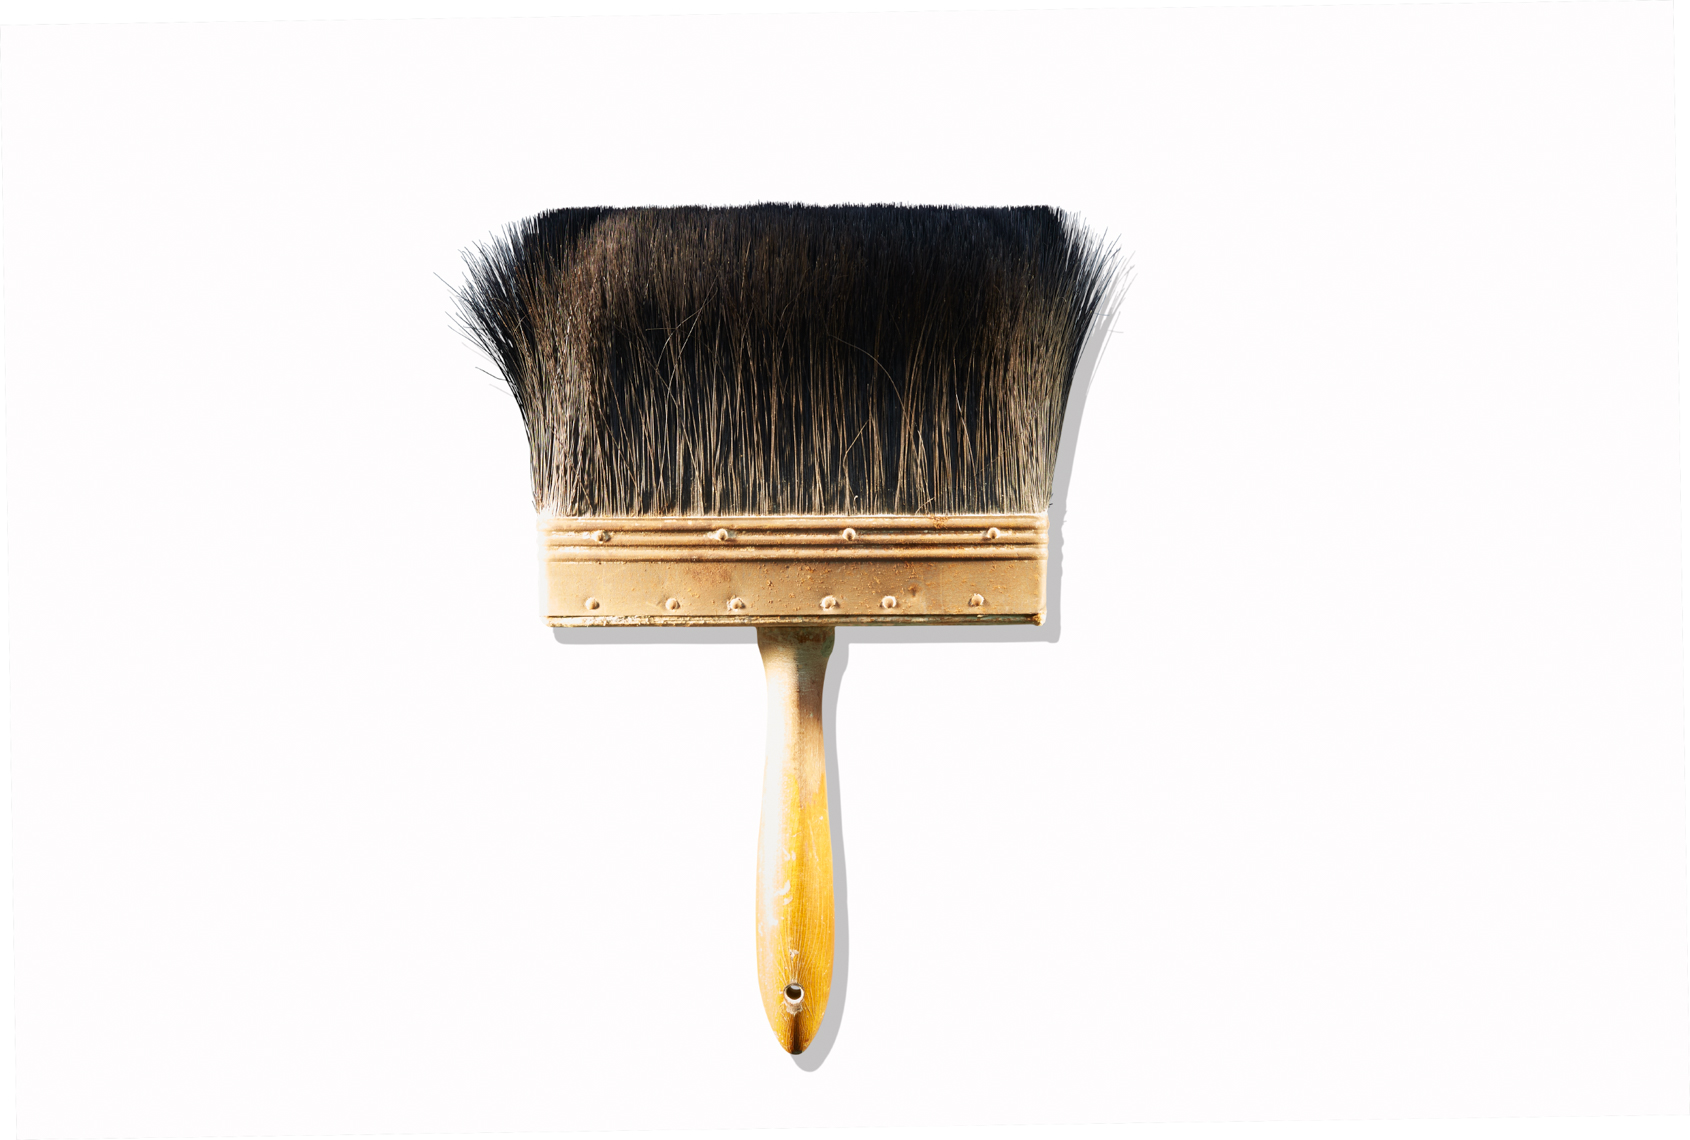 Large art  brush Philip Harvey Photography, San Francisco, California, still life, interiors, lifestyle and product photography